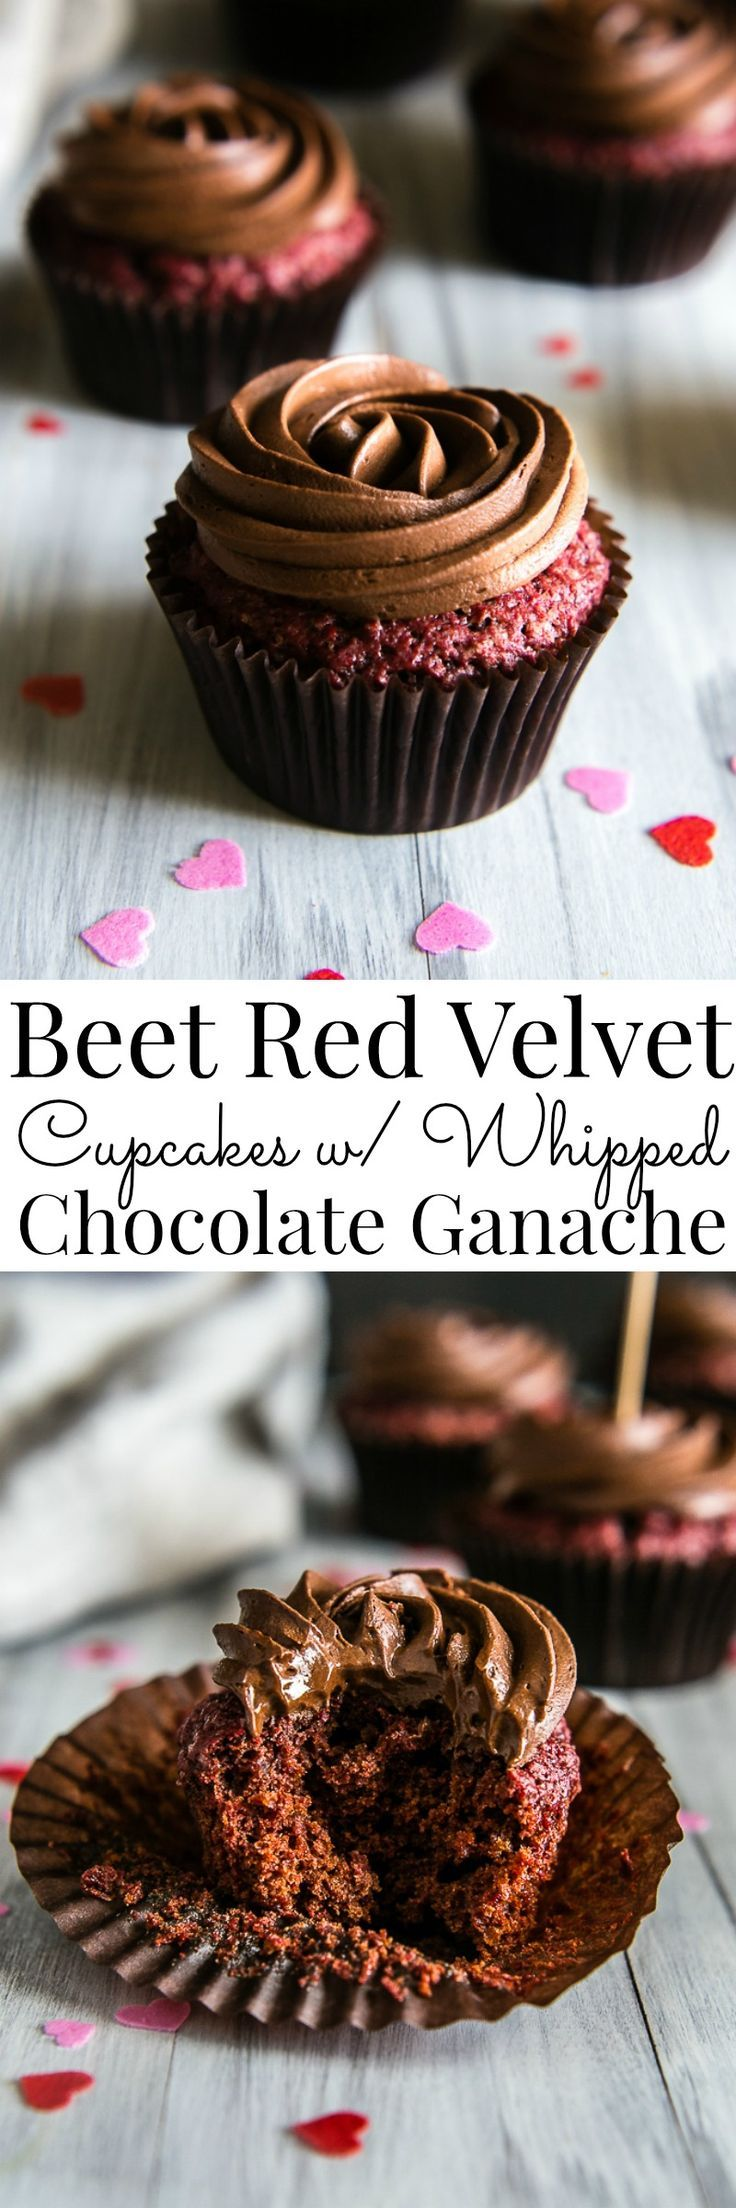 Vegan cupcakes made with beets and no synthetic dye to bring out the most…